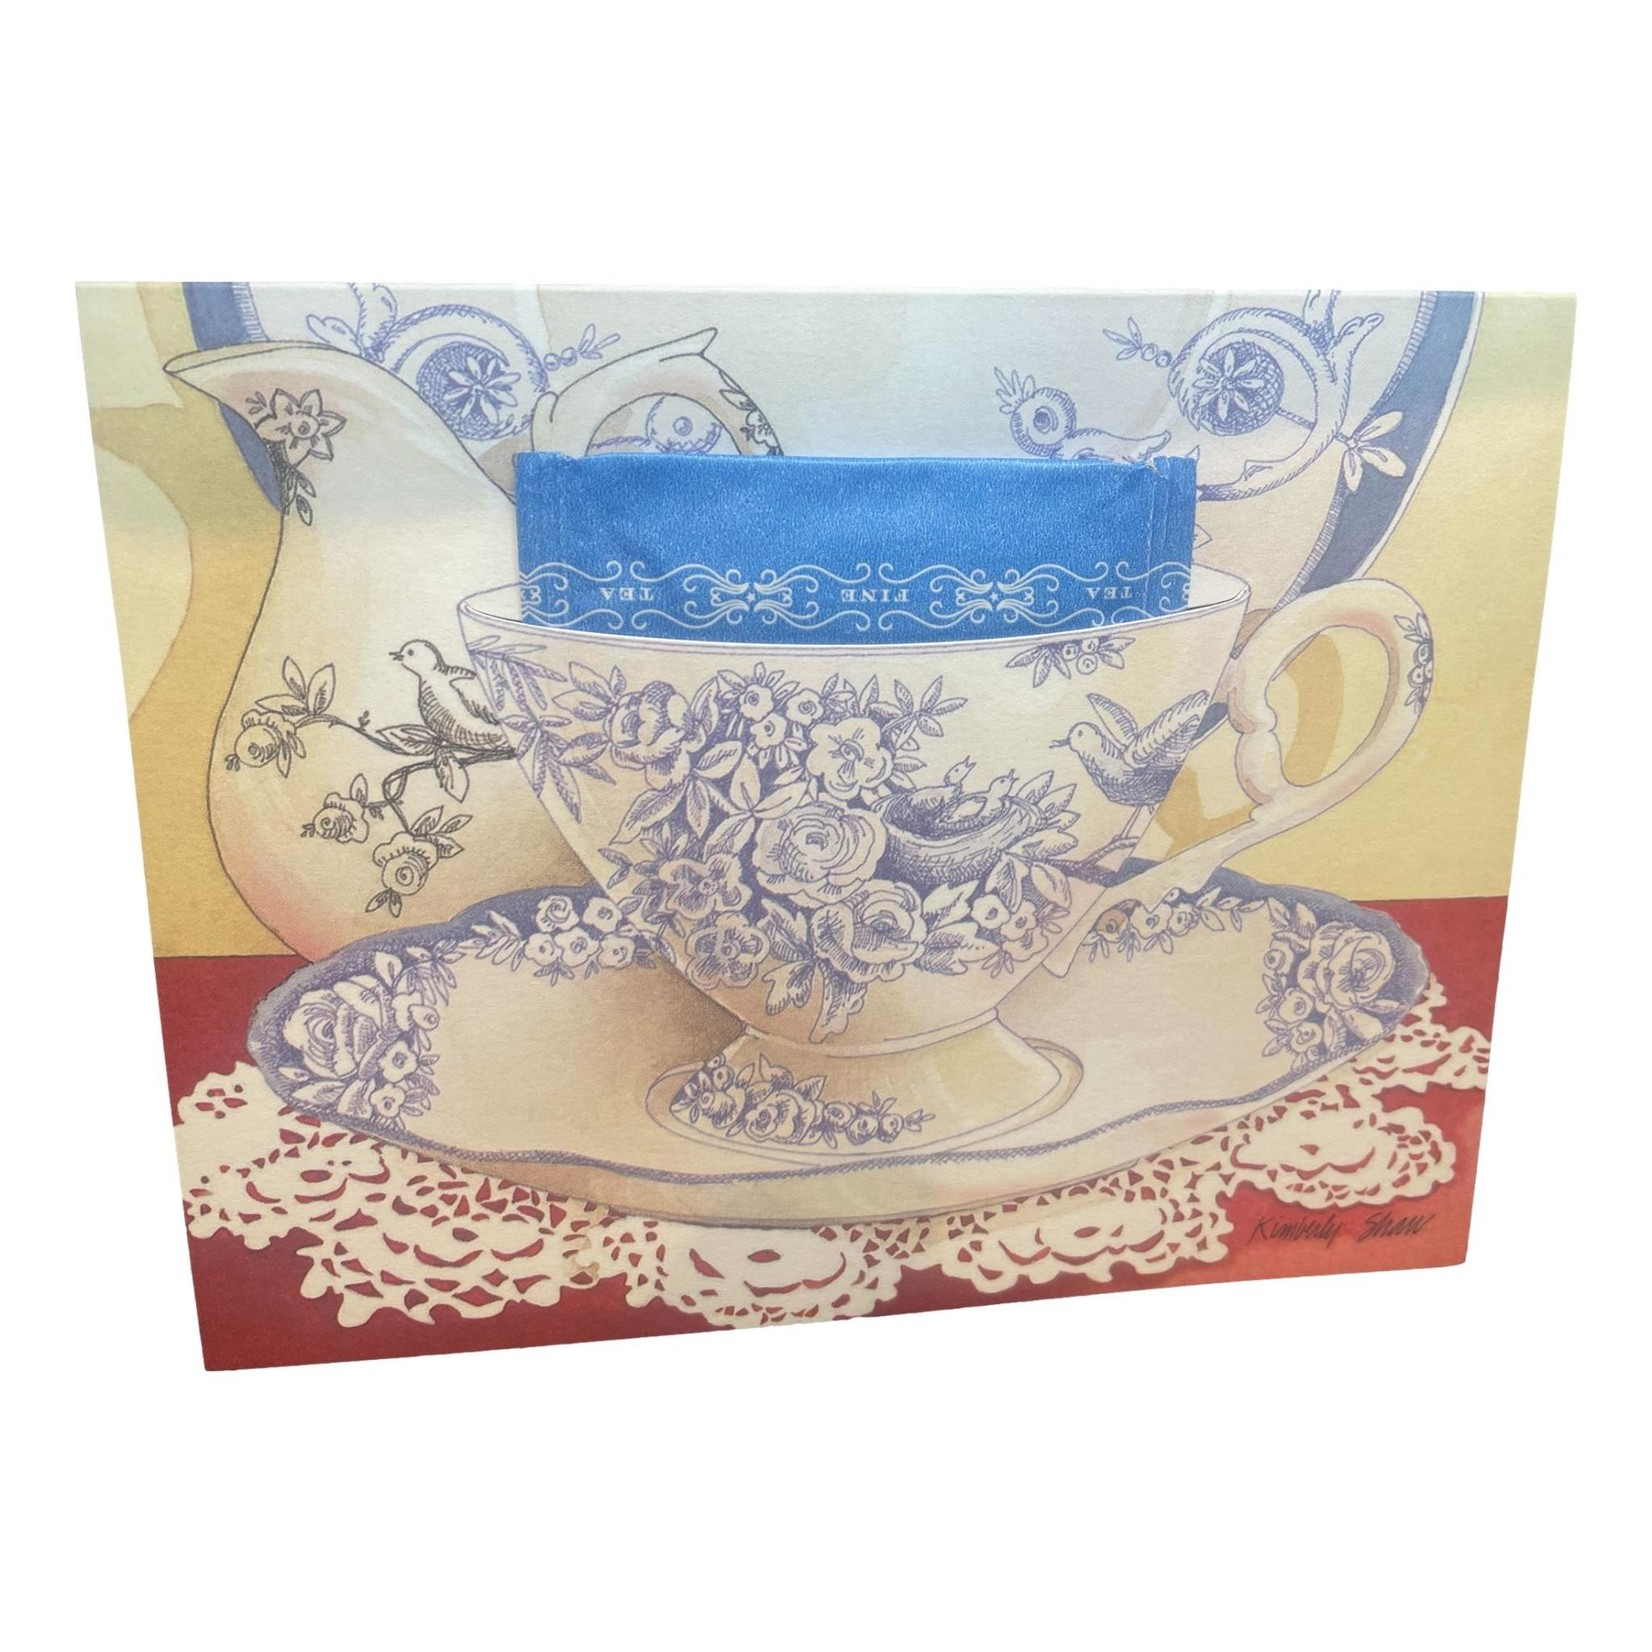 Kimberly Shaw Gorgeous Teacup Note Card